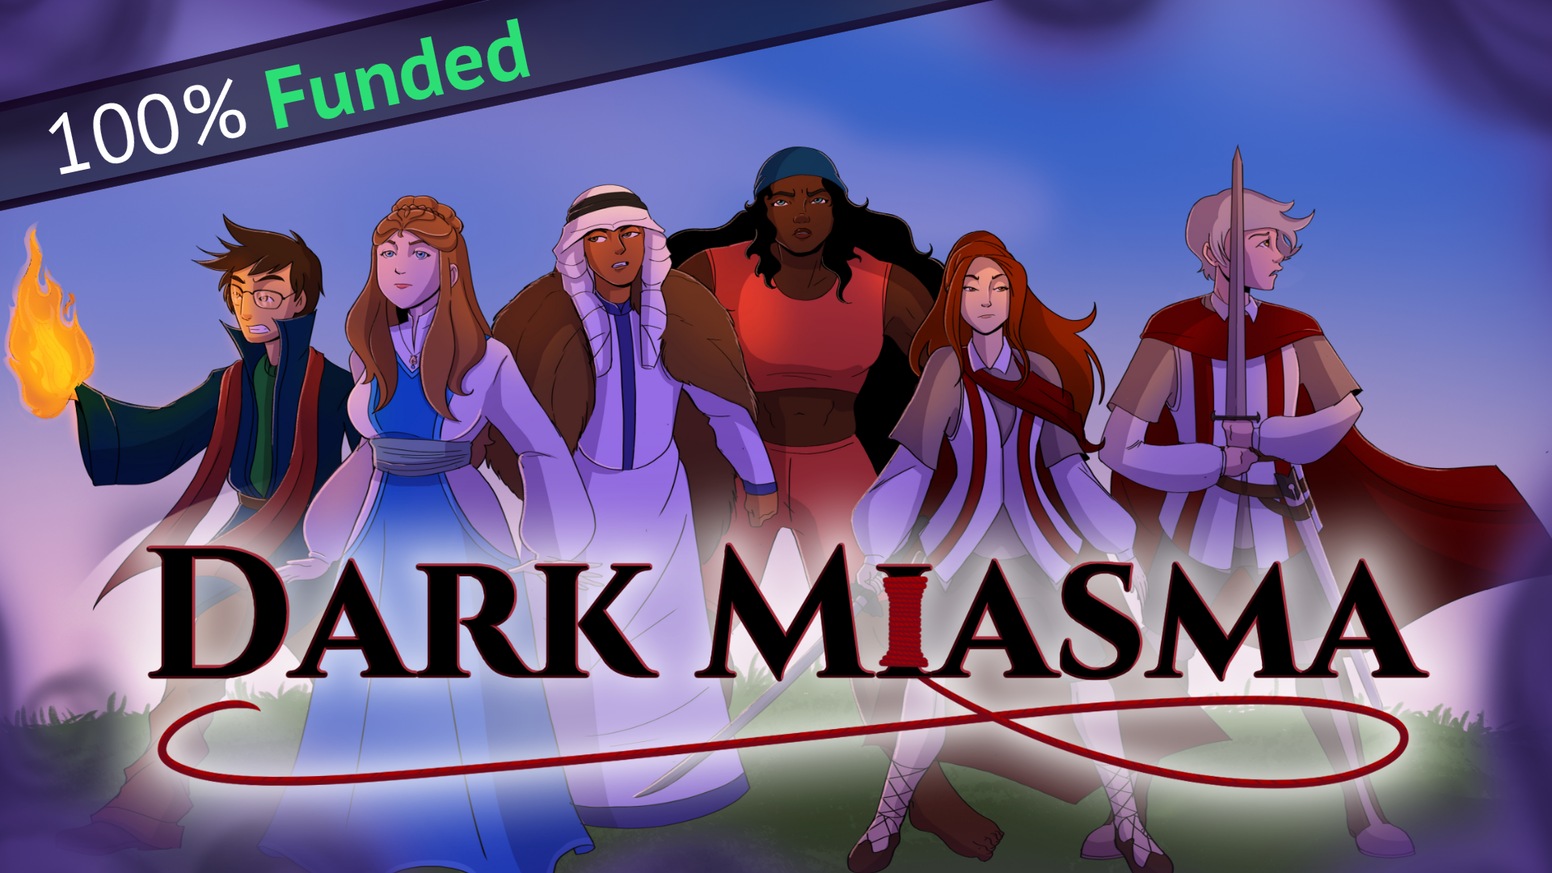 A hybrid of visual novel storytelling and deck-building RPG combat. Use your time wisely to save as many of the townsfolk as you can!